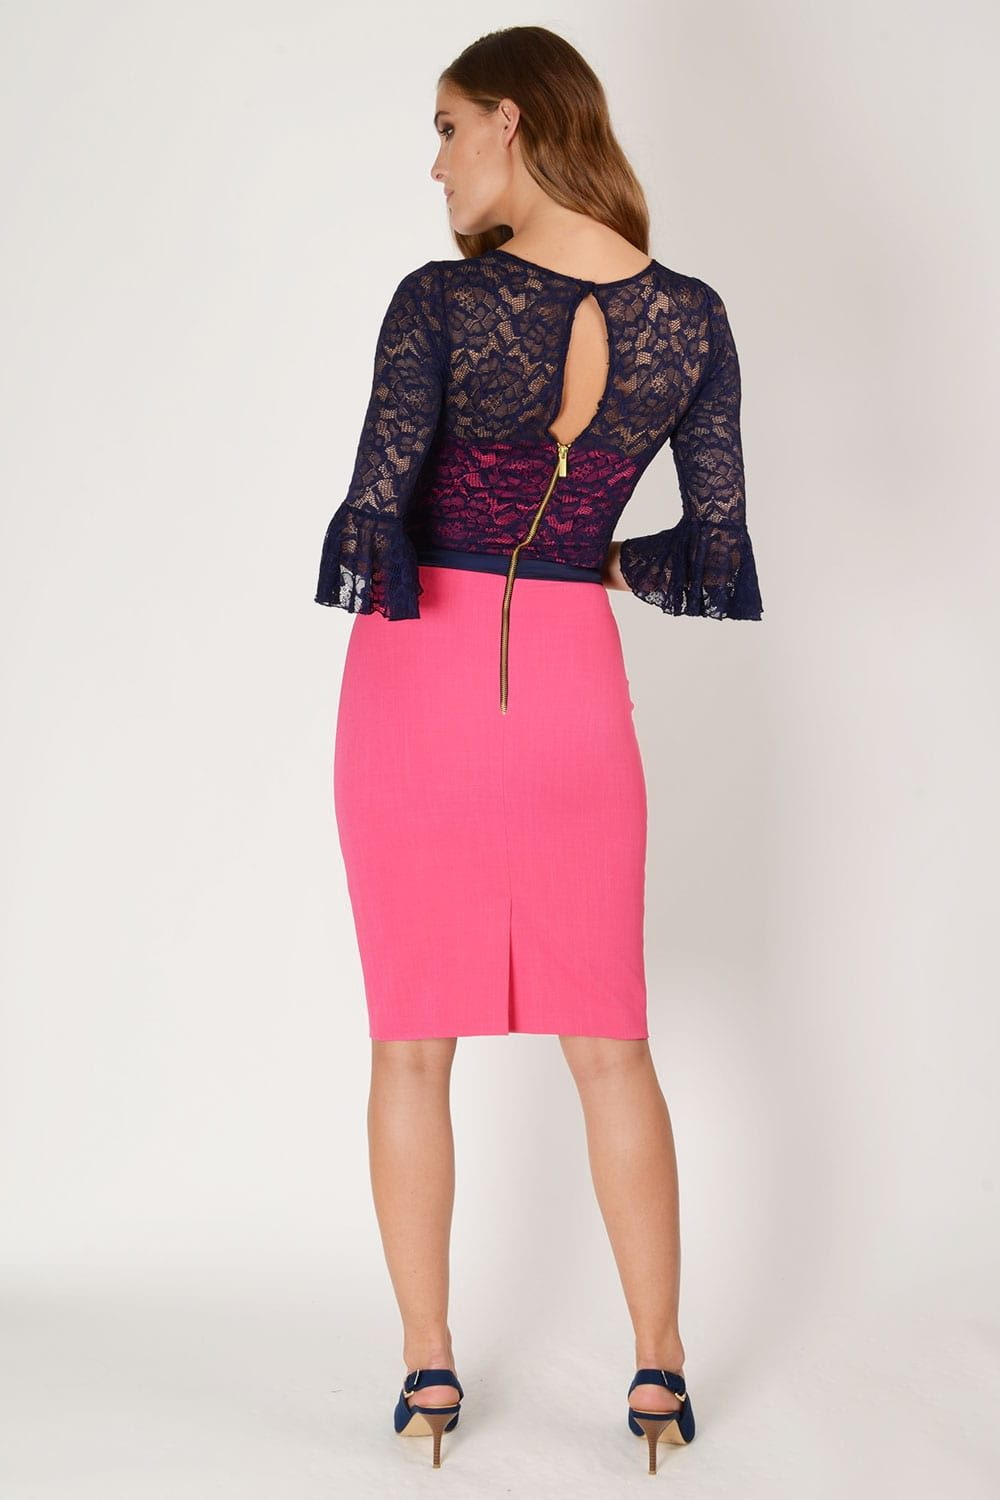 Hybrid Fashion 1248 Zoe Lace Bell Sleeve Pencil Dress